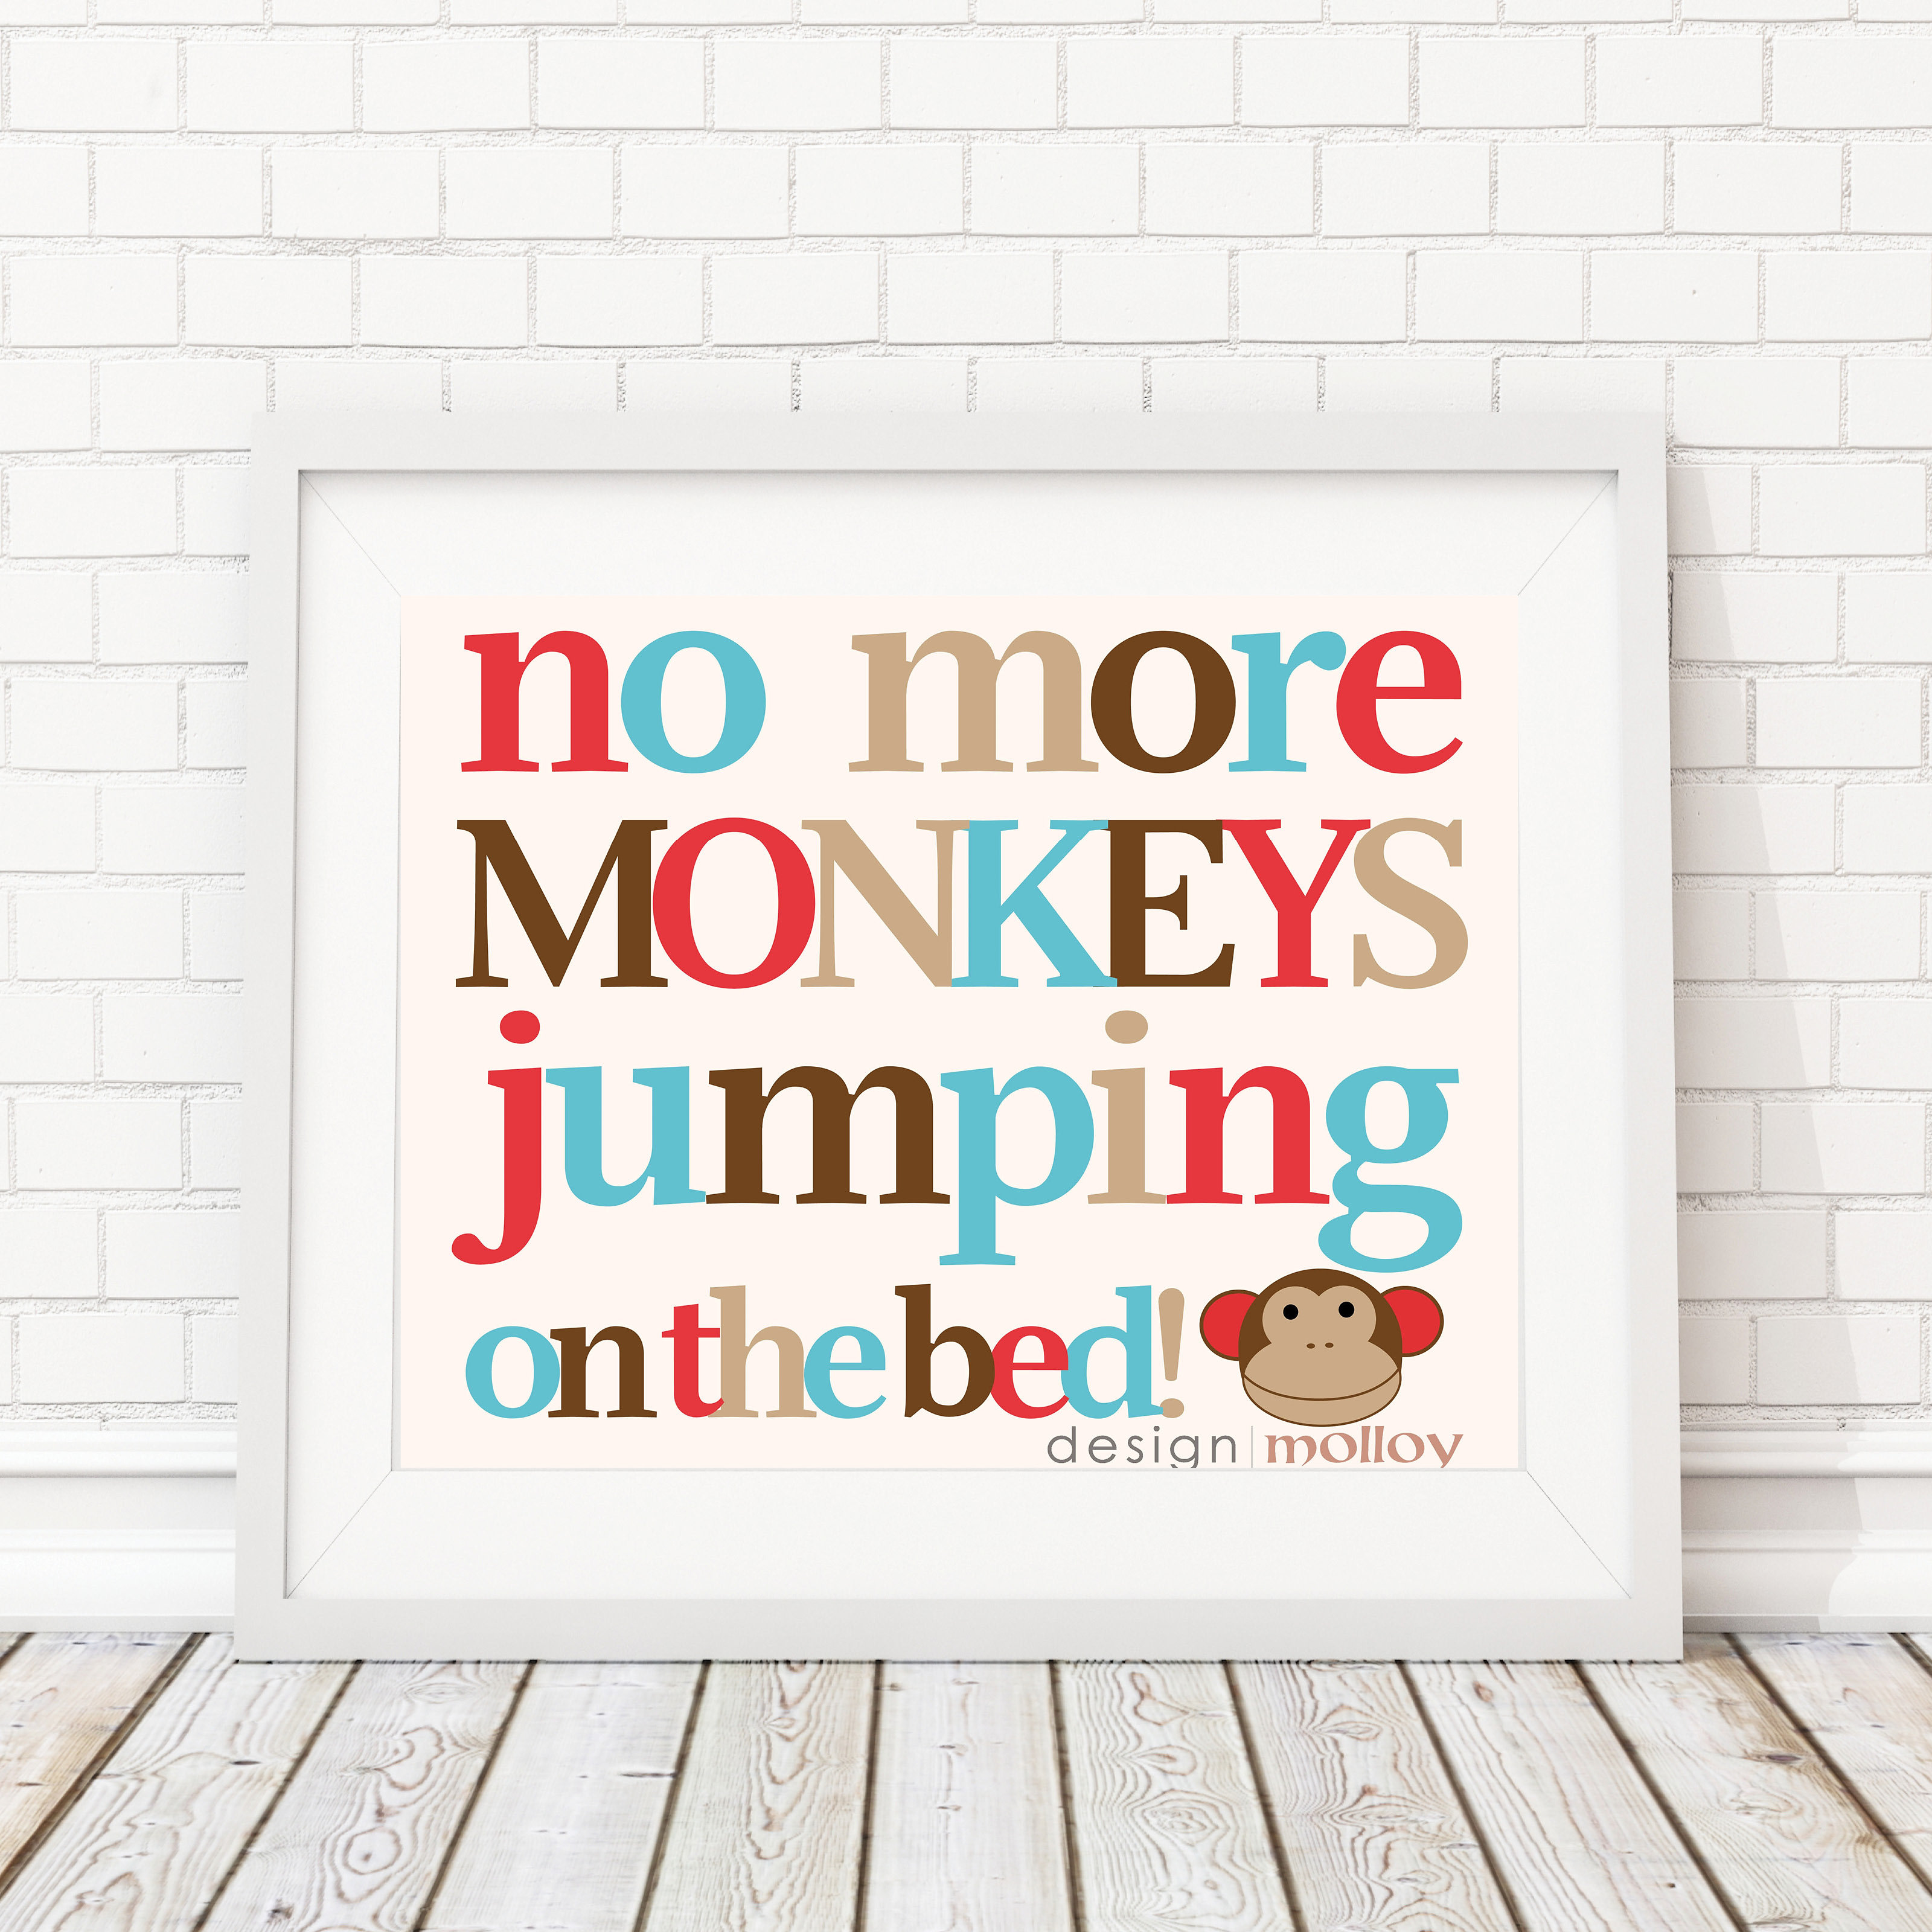 Design molloy word art prints canada no more monkeys print nursery decor no more monkeys jumping on the bed this playful monkey wall art is fun to hang in your childs nursery bedroom or playroom amipublicfo Image collections